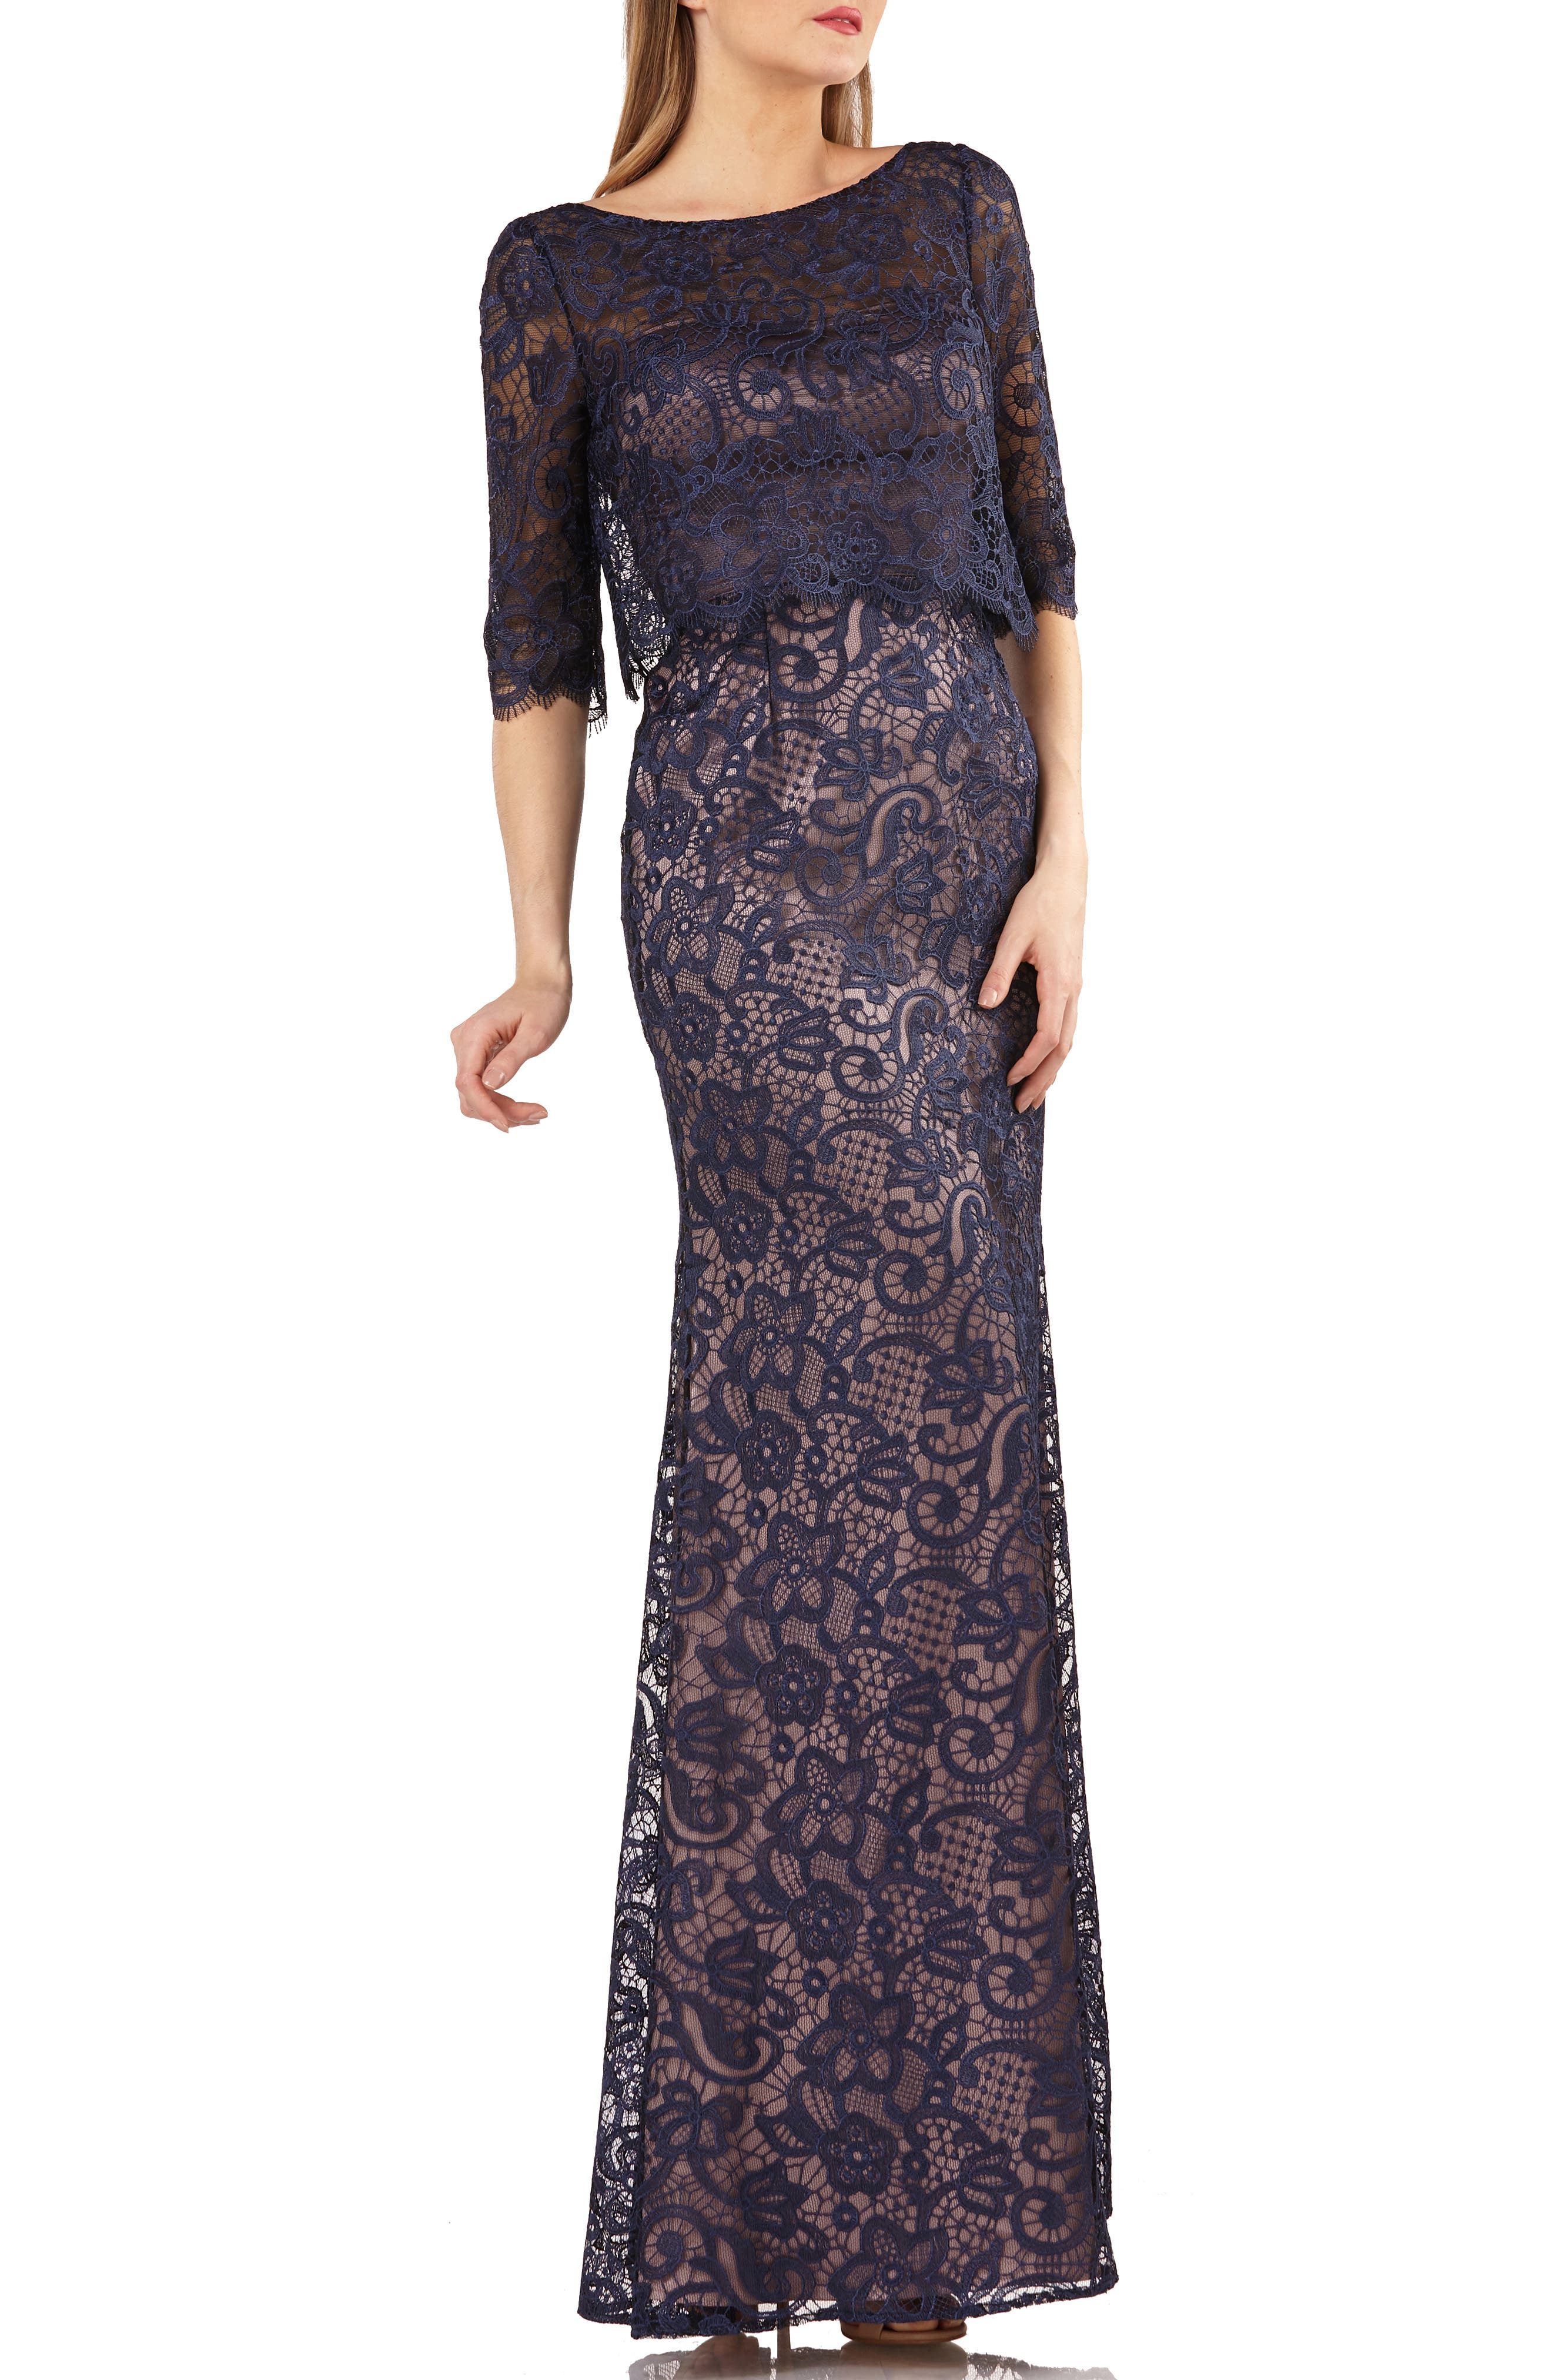 Js Collection Embroidered Lace Scallop Trim Evening Dress, Blue